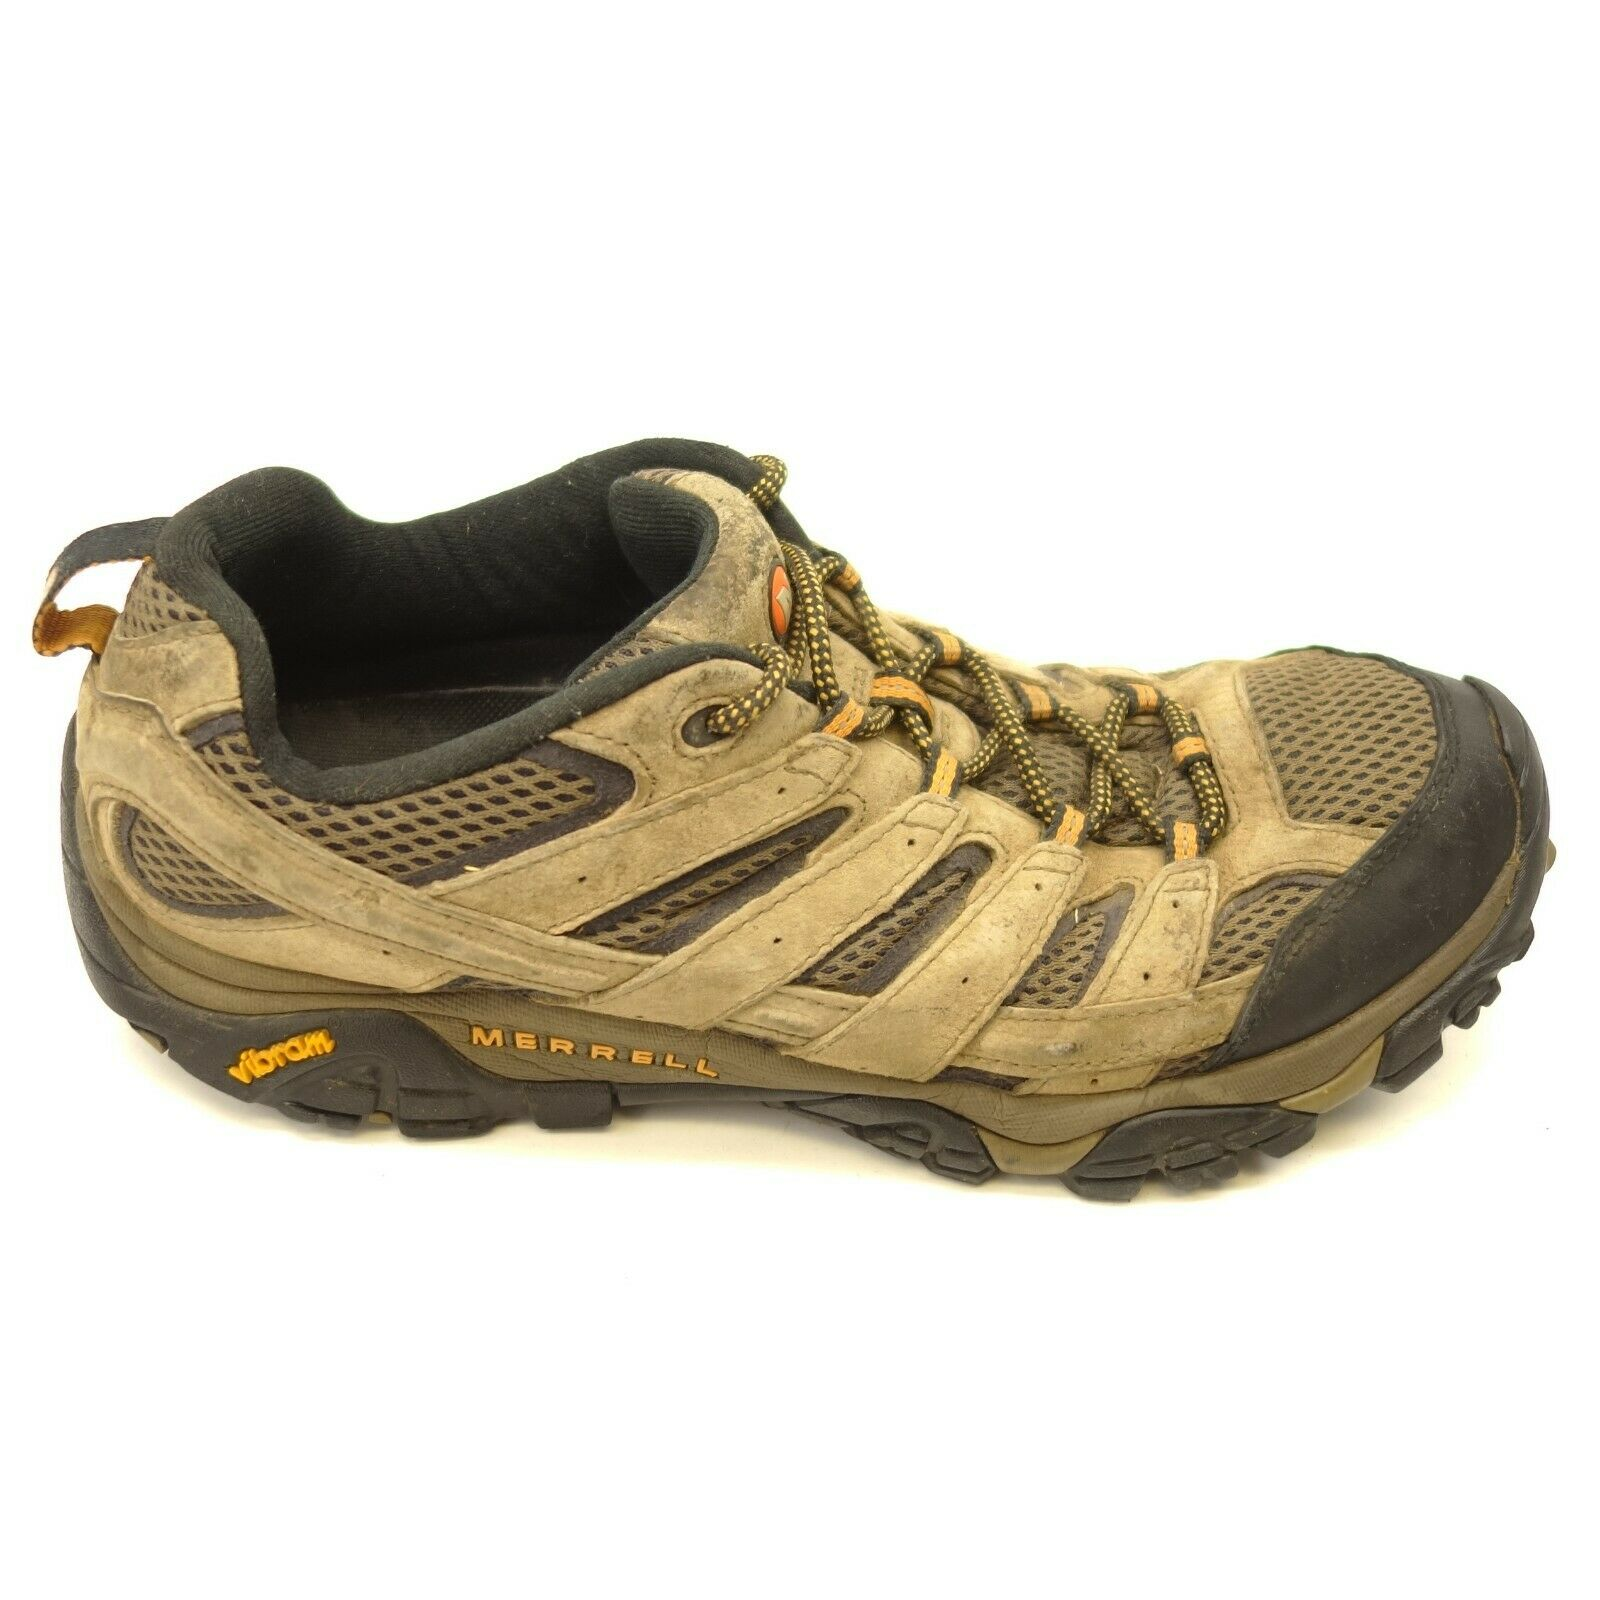 Merrell Moab 2 Low Vent US 11.5 Athletic Support Hiking Trail Mens shoes